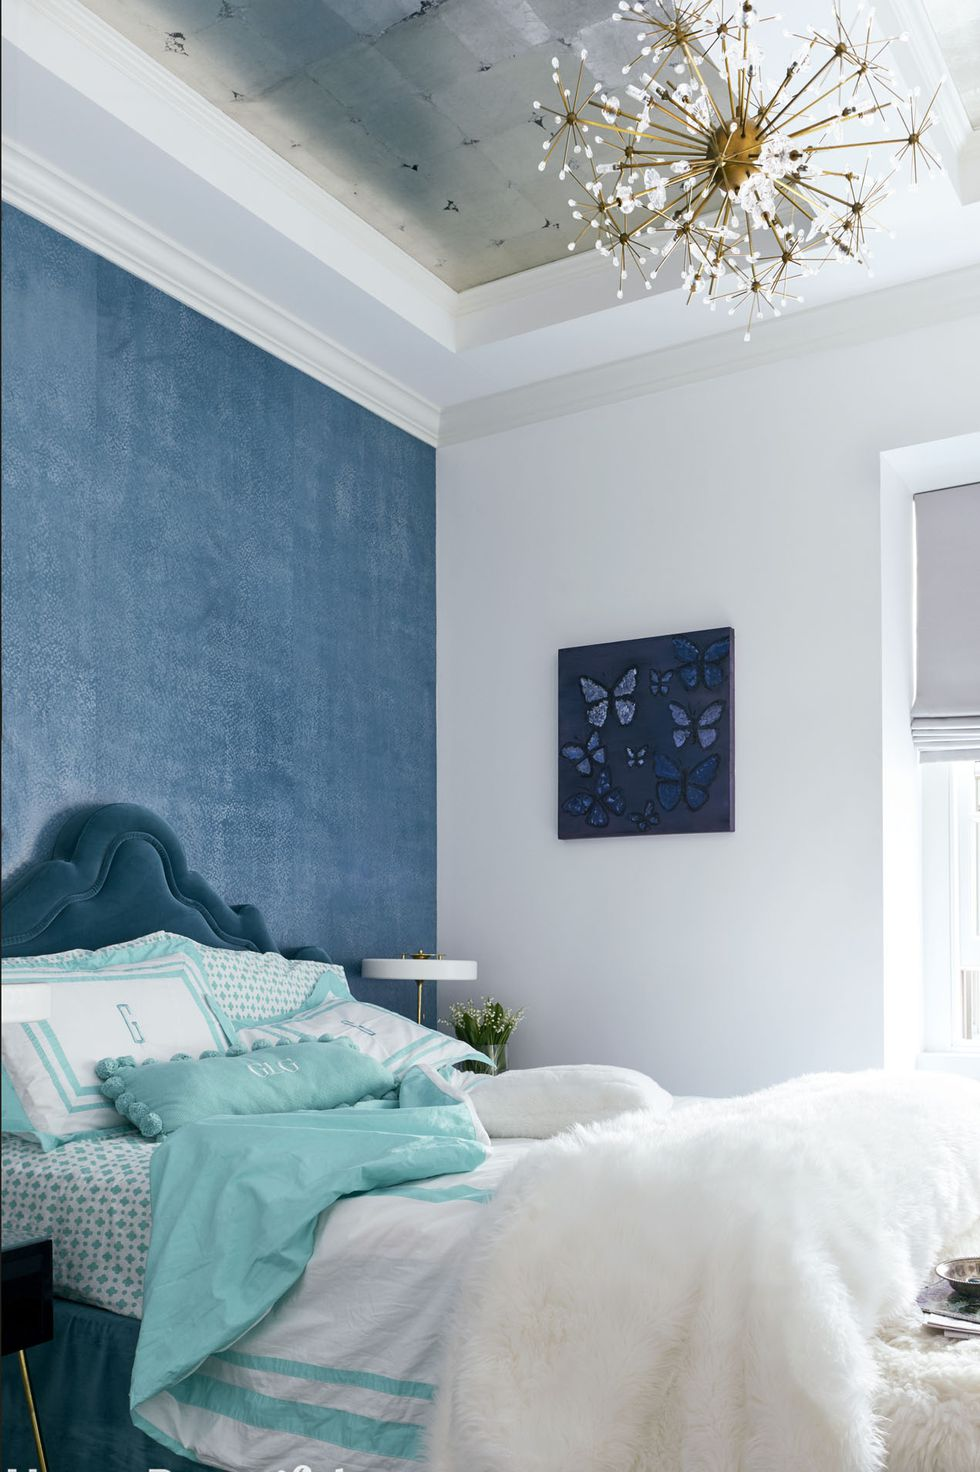 Bedroom Ceiling Ideas That You Need To Consider Now 6 bedroom ceiling ideas Bedroom Ceiling Ideas That You Need To Consider Now Bedroom Ceiling Ideas That You Need To Consider Now 6